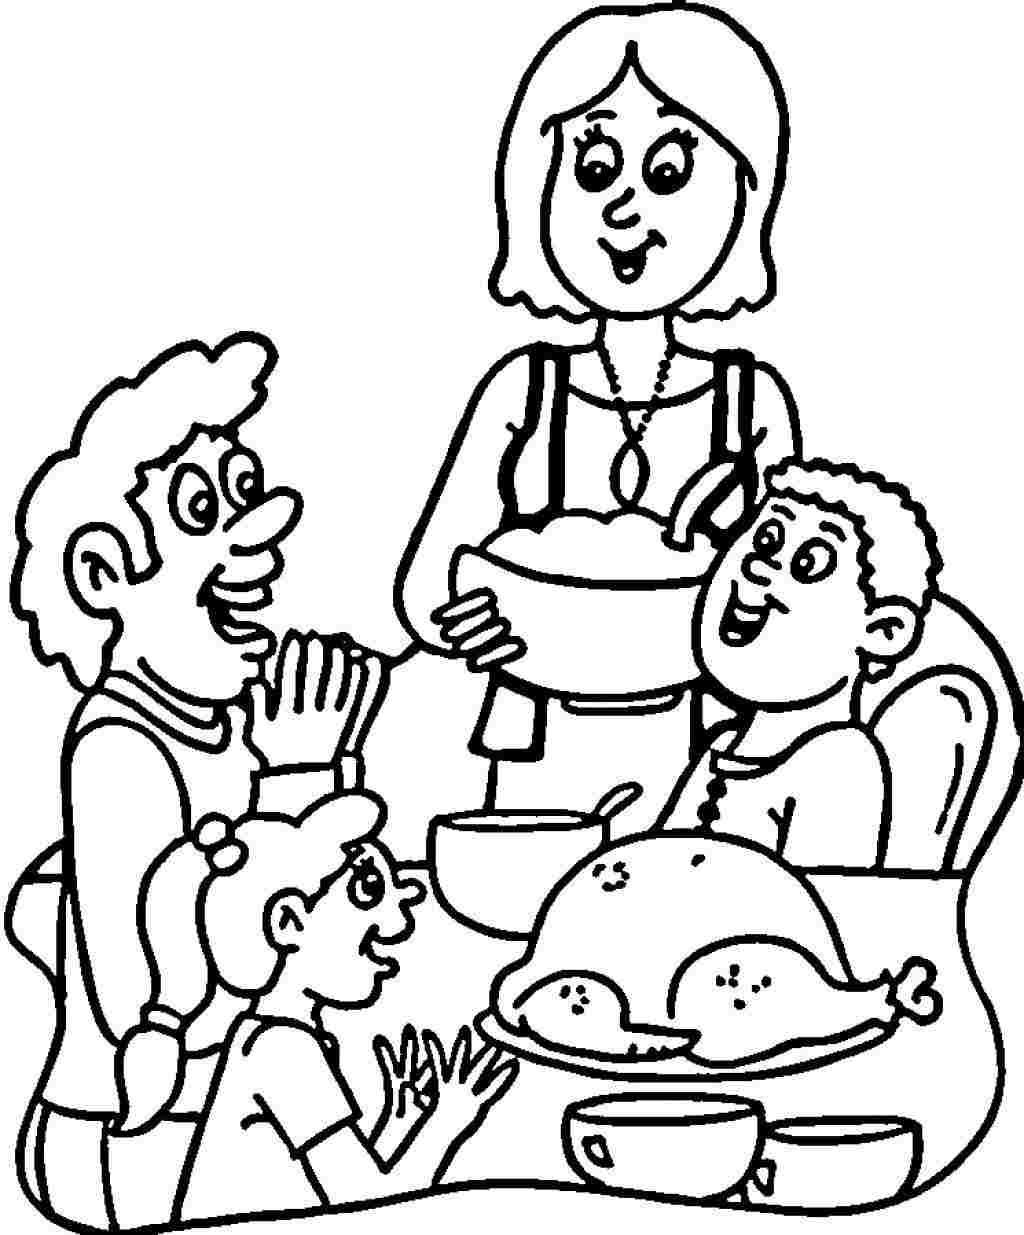 thanksgiving day coloring pages turkey day blank coloring page by bobcatburgerface on coloring thanksgiving day pages